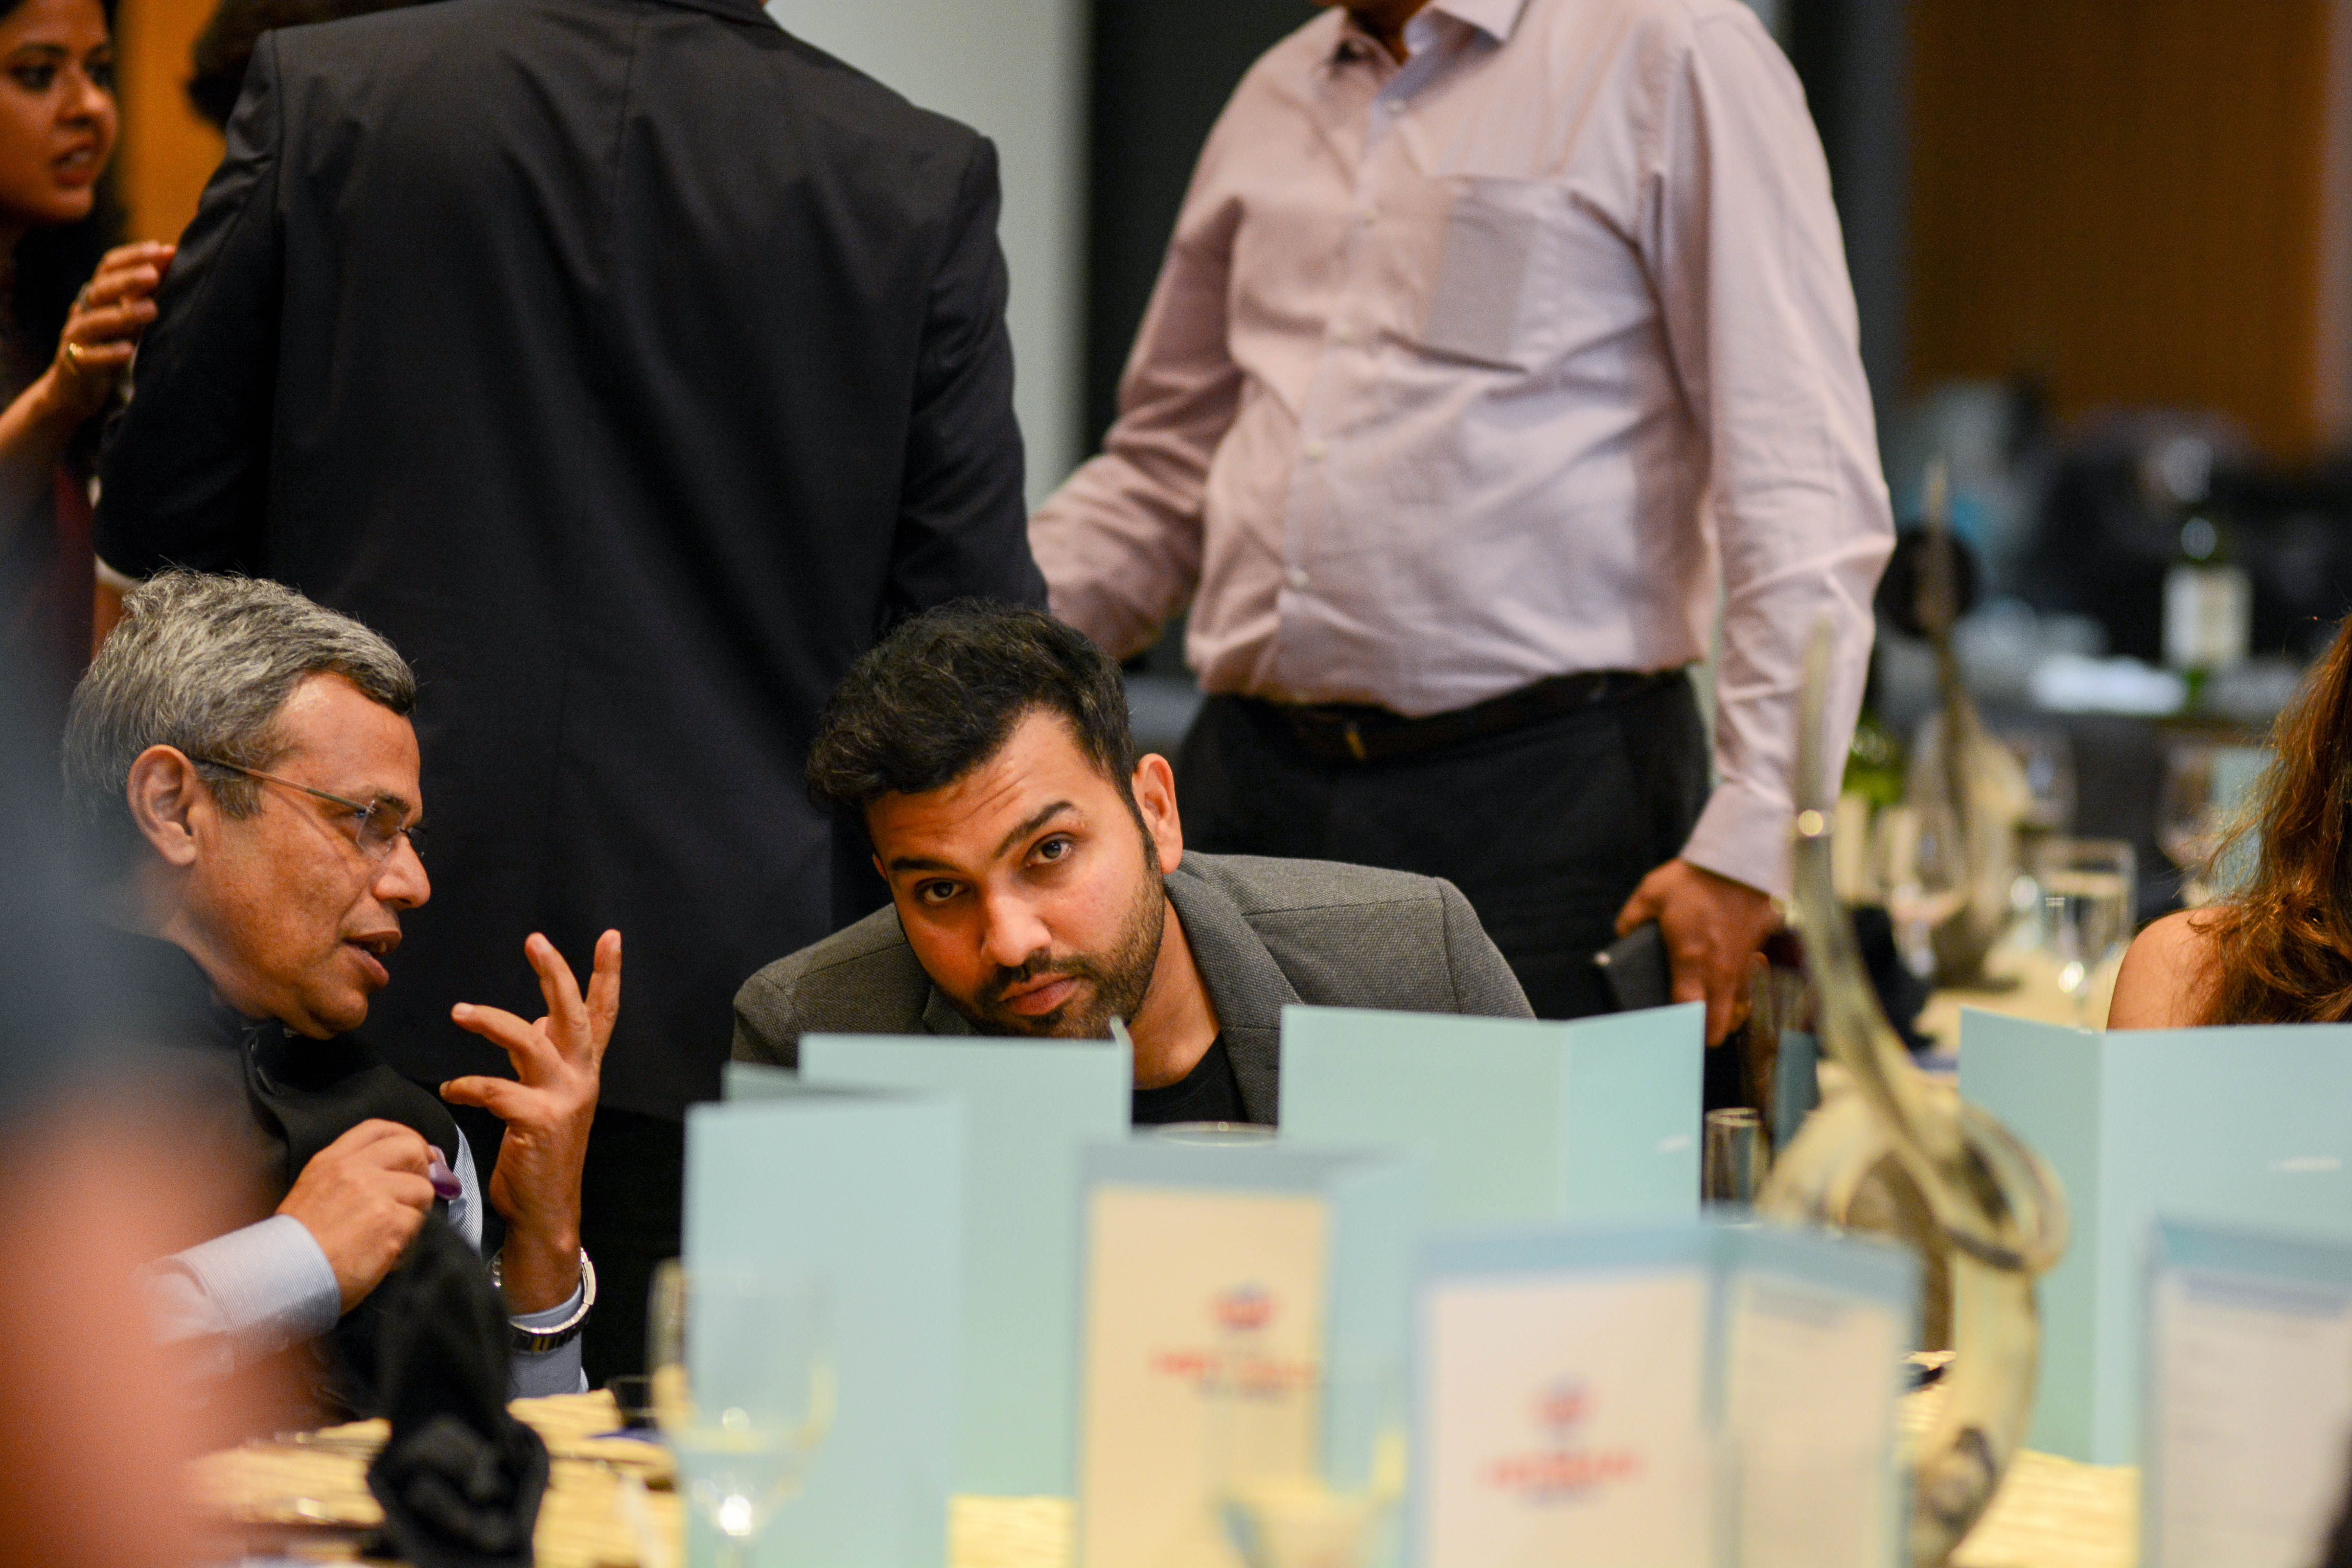 Rohit turns an ear to interact with the high commissioner during dinner. Photo courtesy: Events Kingdom